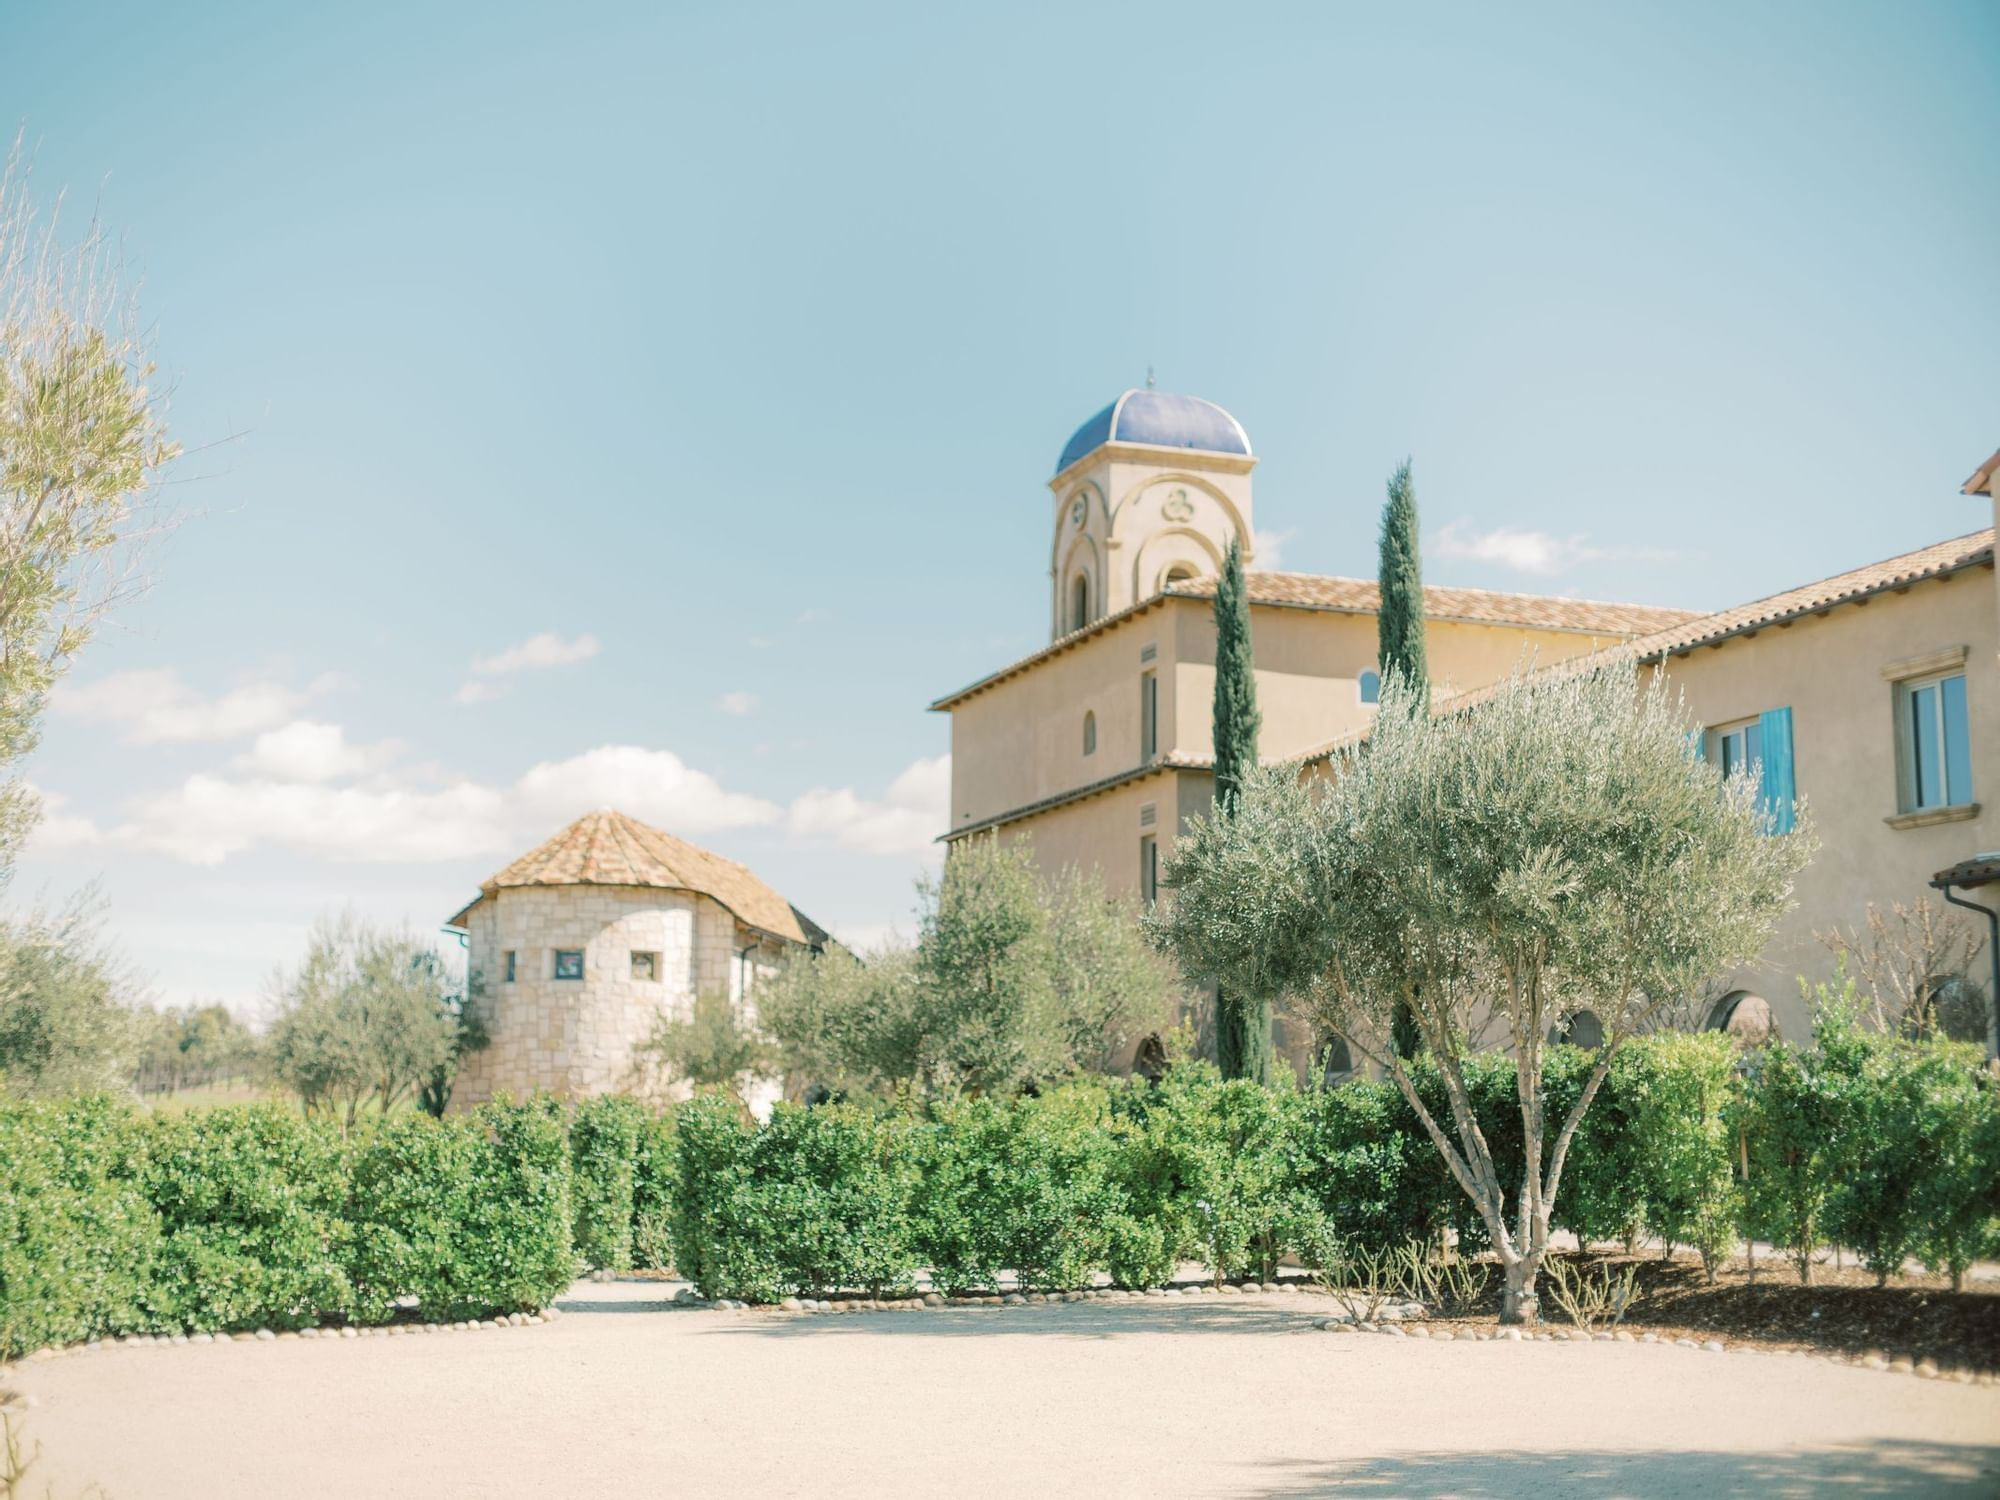 Looking through the landscape of Allegretto Resort at the Abbey